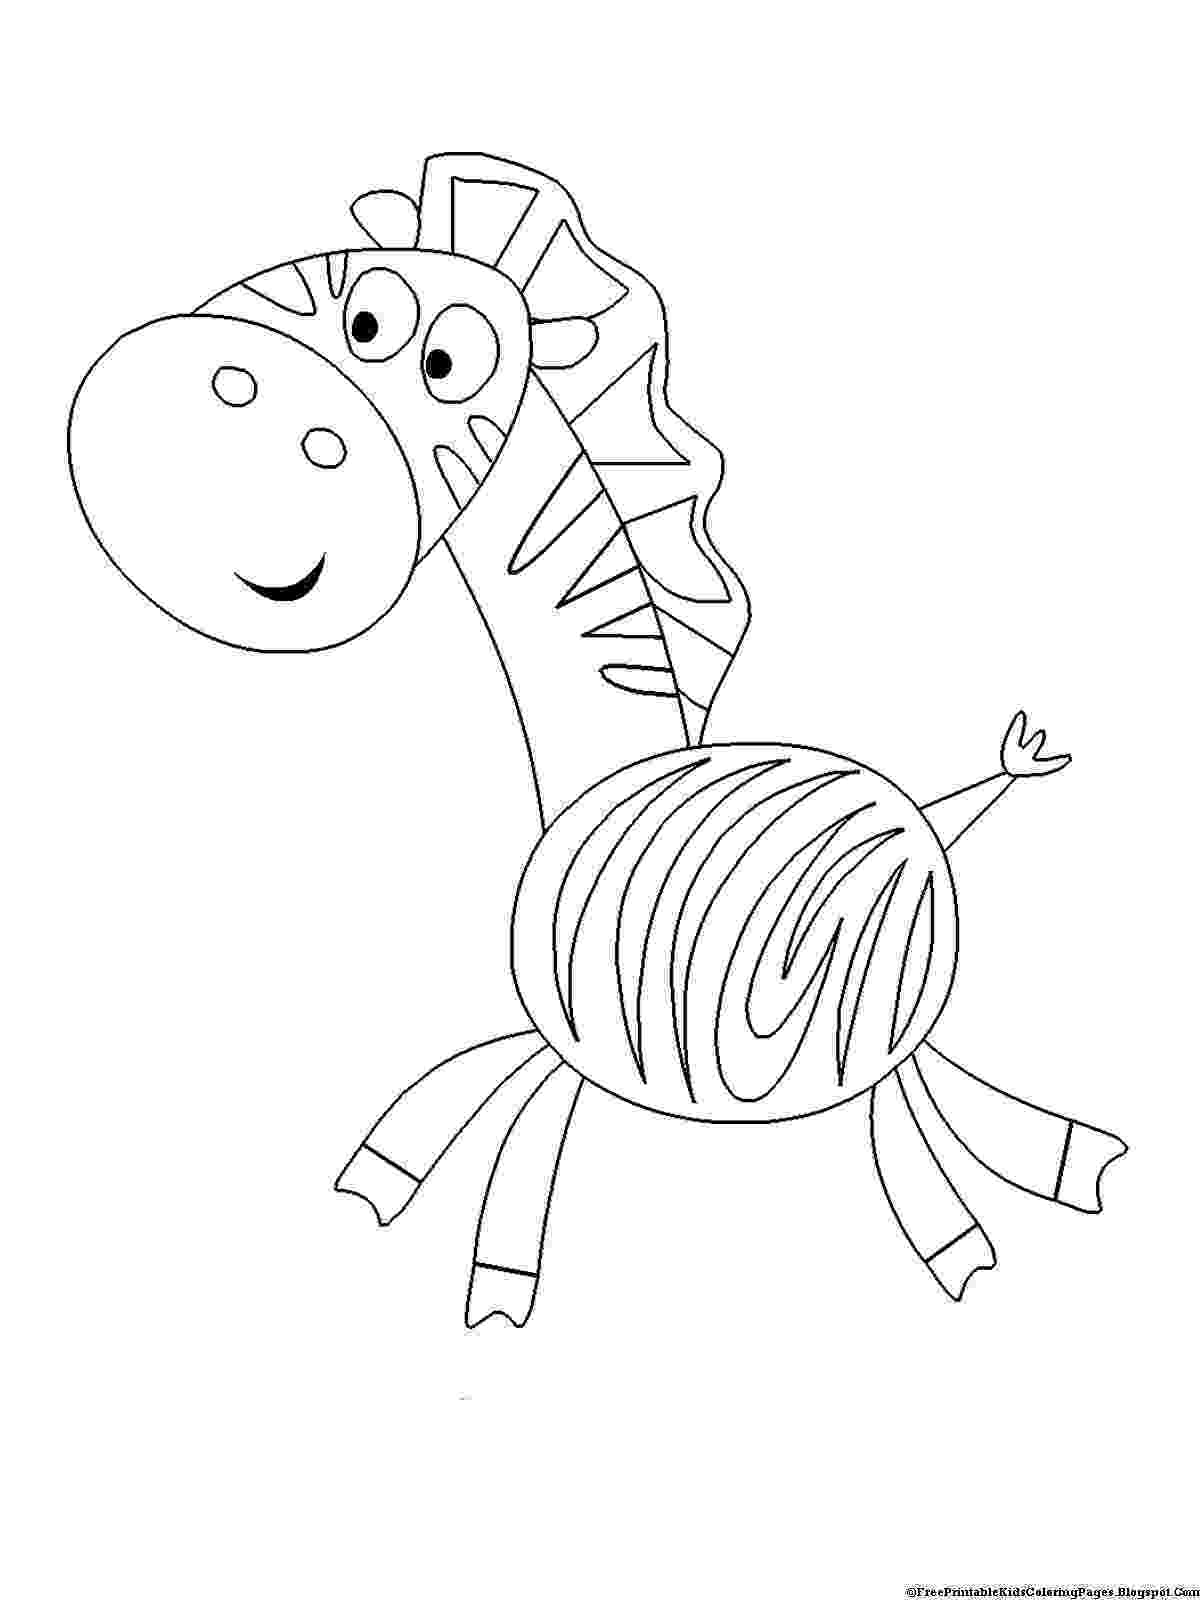 printable pages to color the hero of color city coloring book pages printable to color